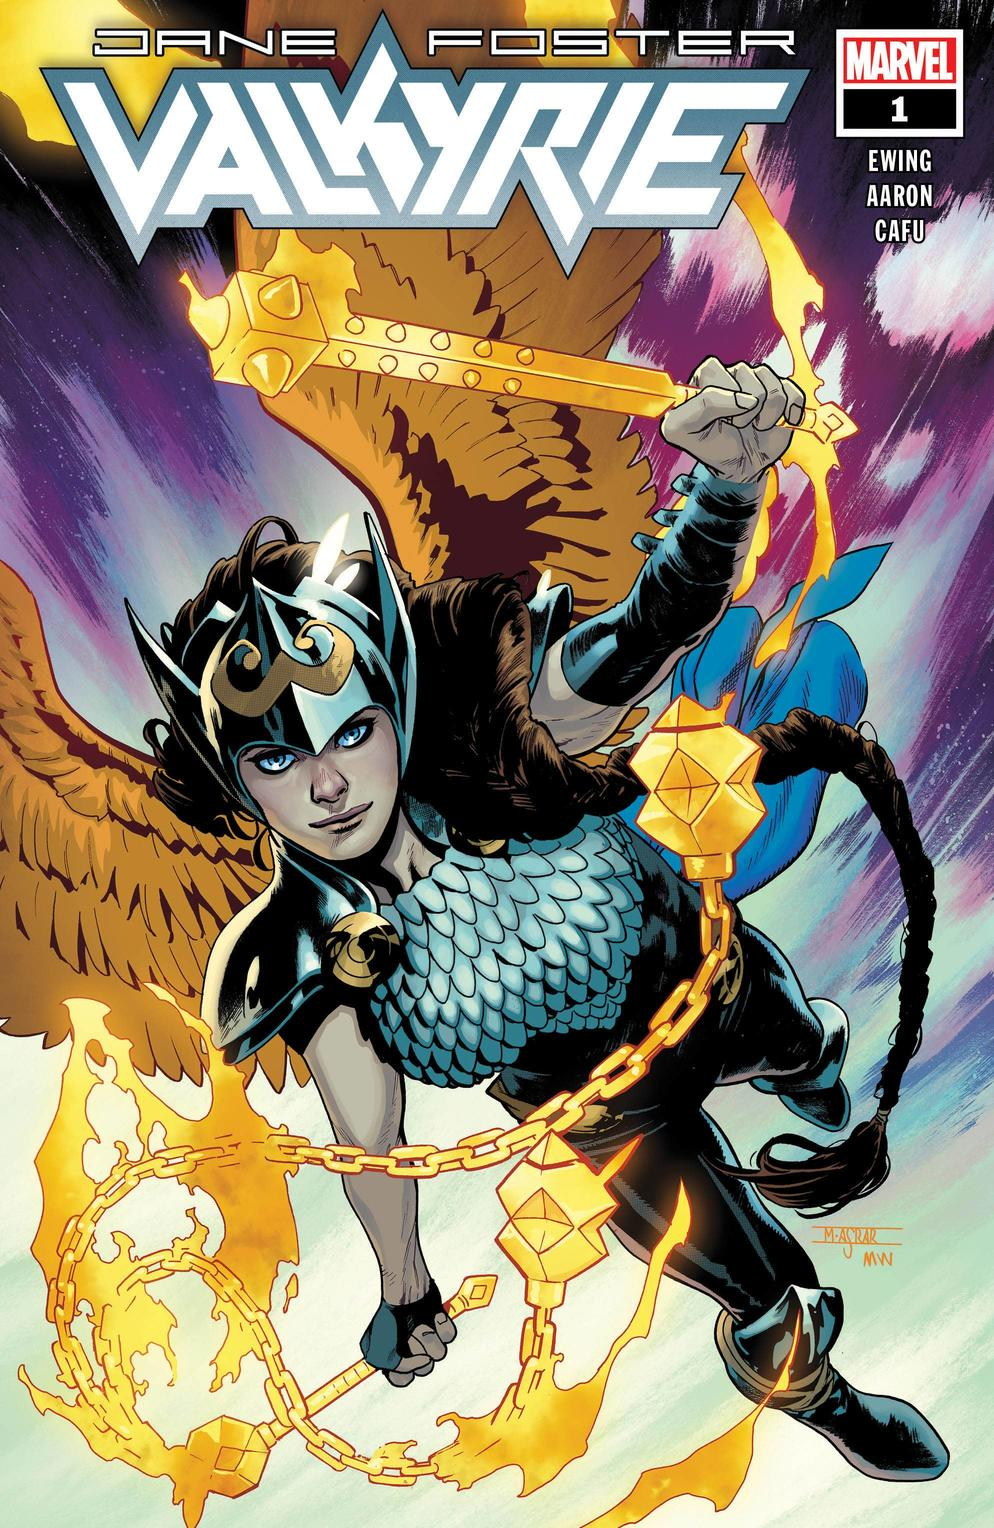 Marvel Comics reveals an unexpected, new Valkyrie